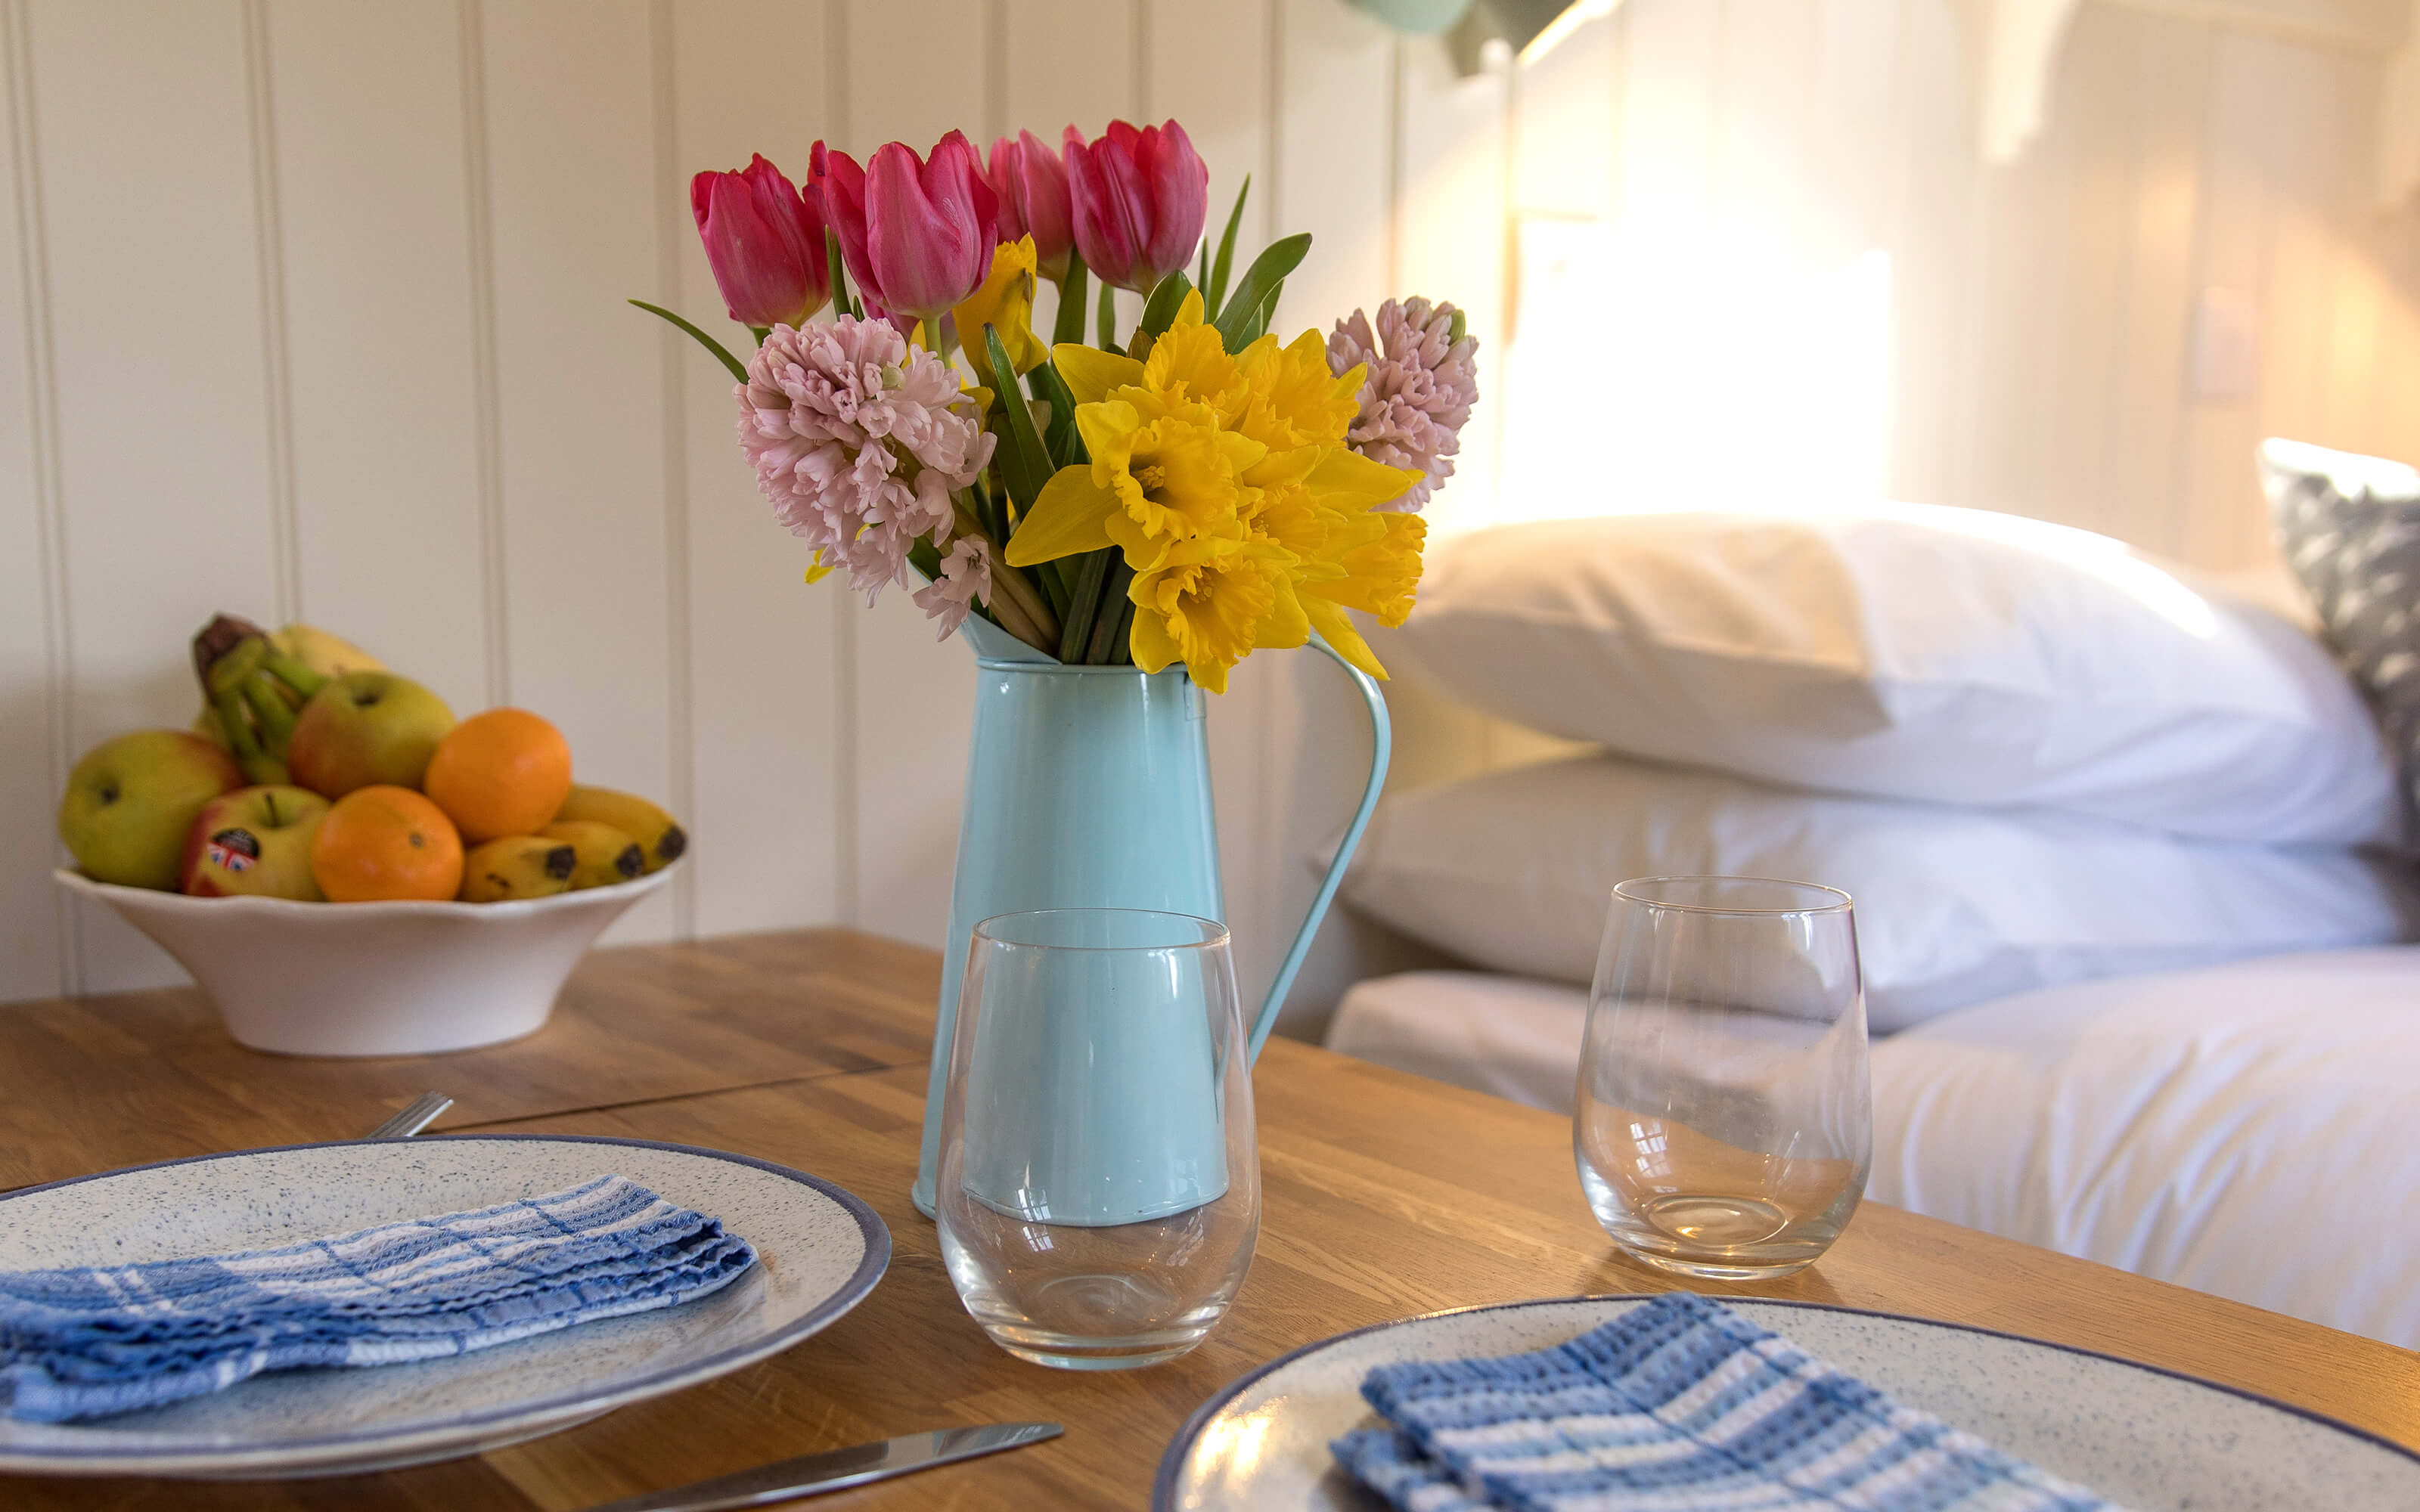 A table setting with flowers inside a shepherds hut.